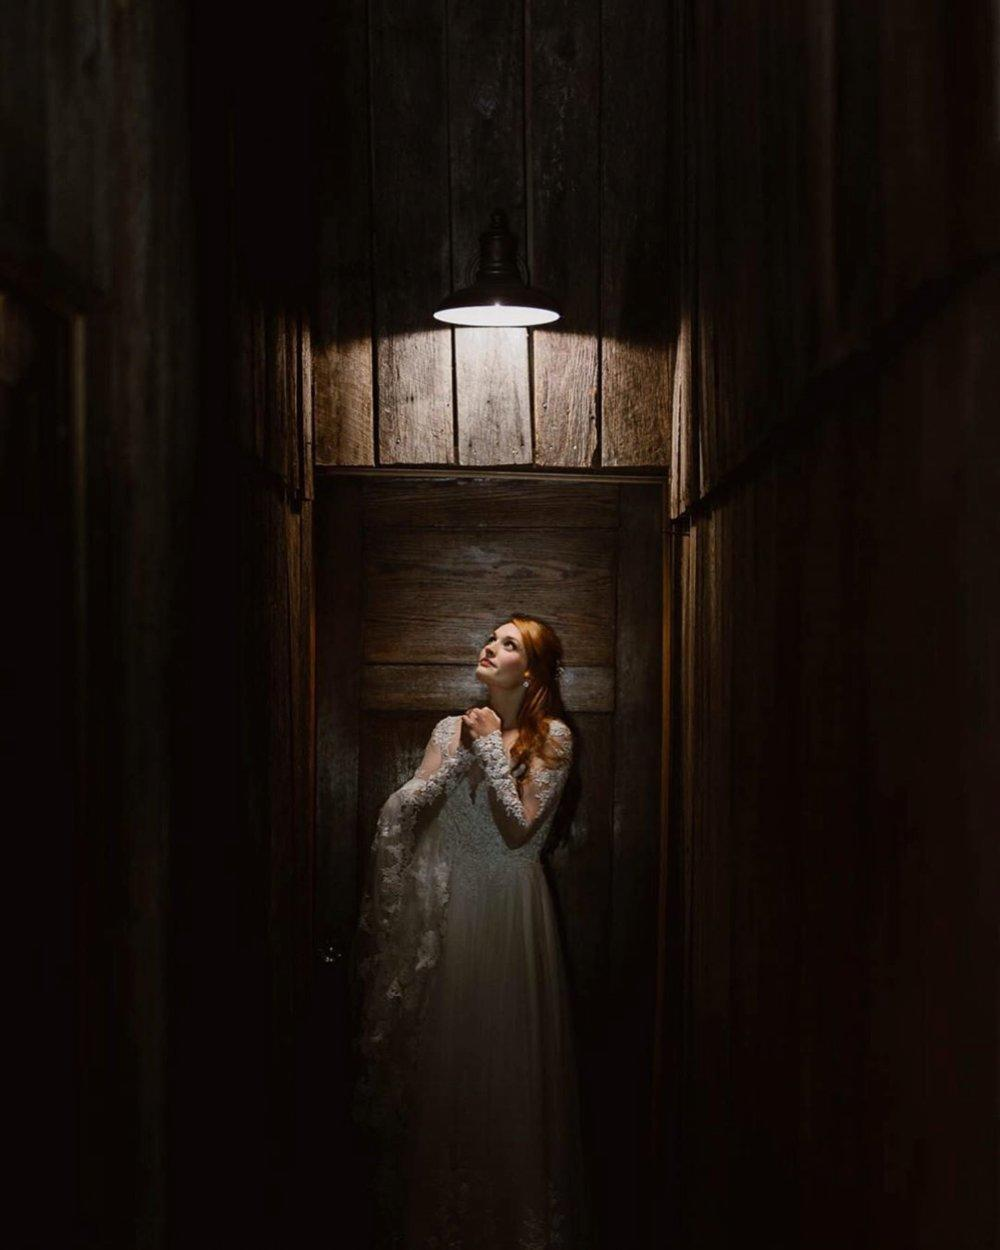 Porchlight beautifully highlighting a bride standing